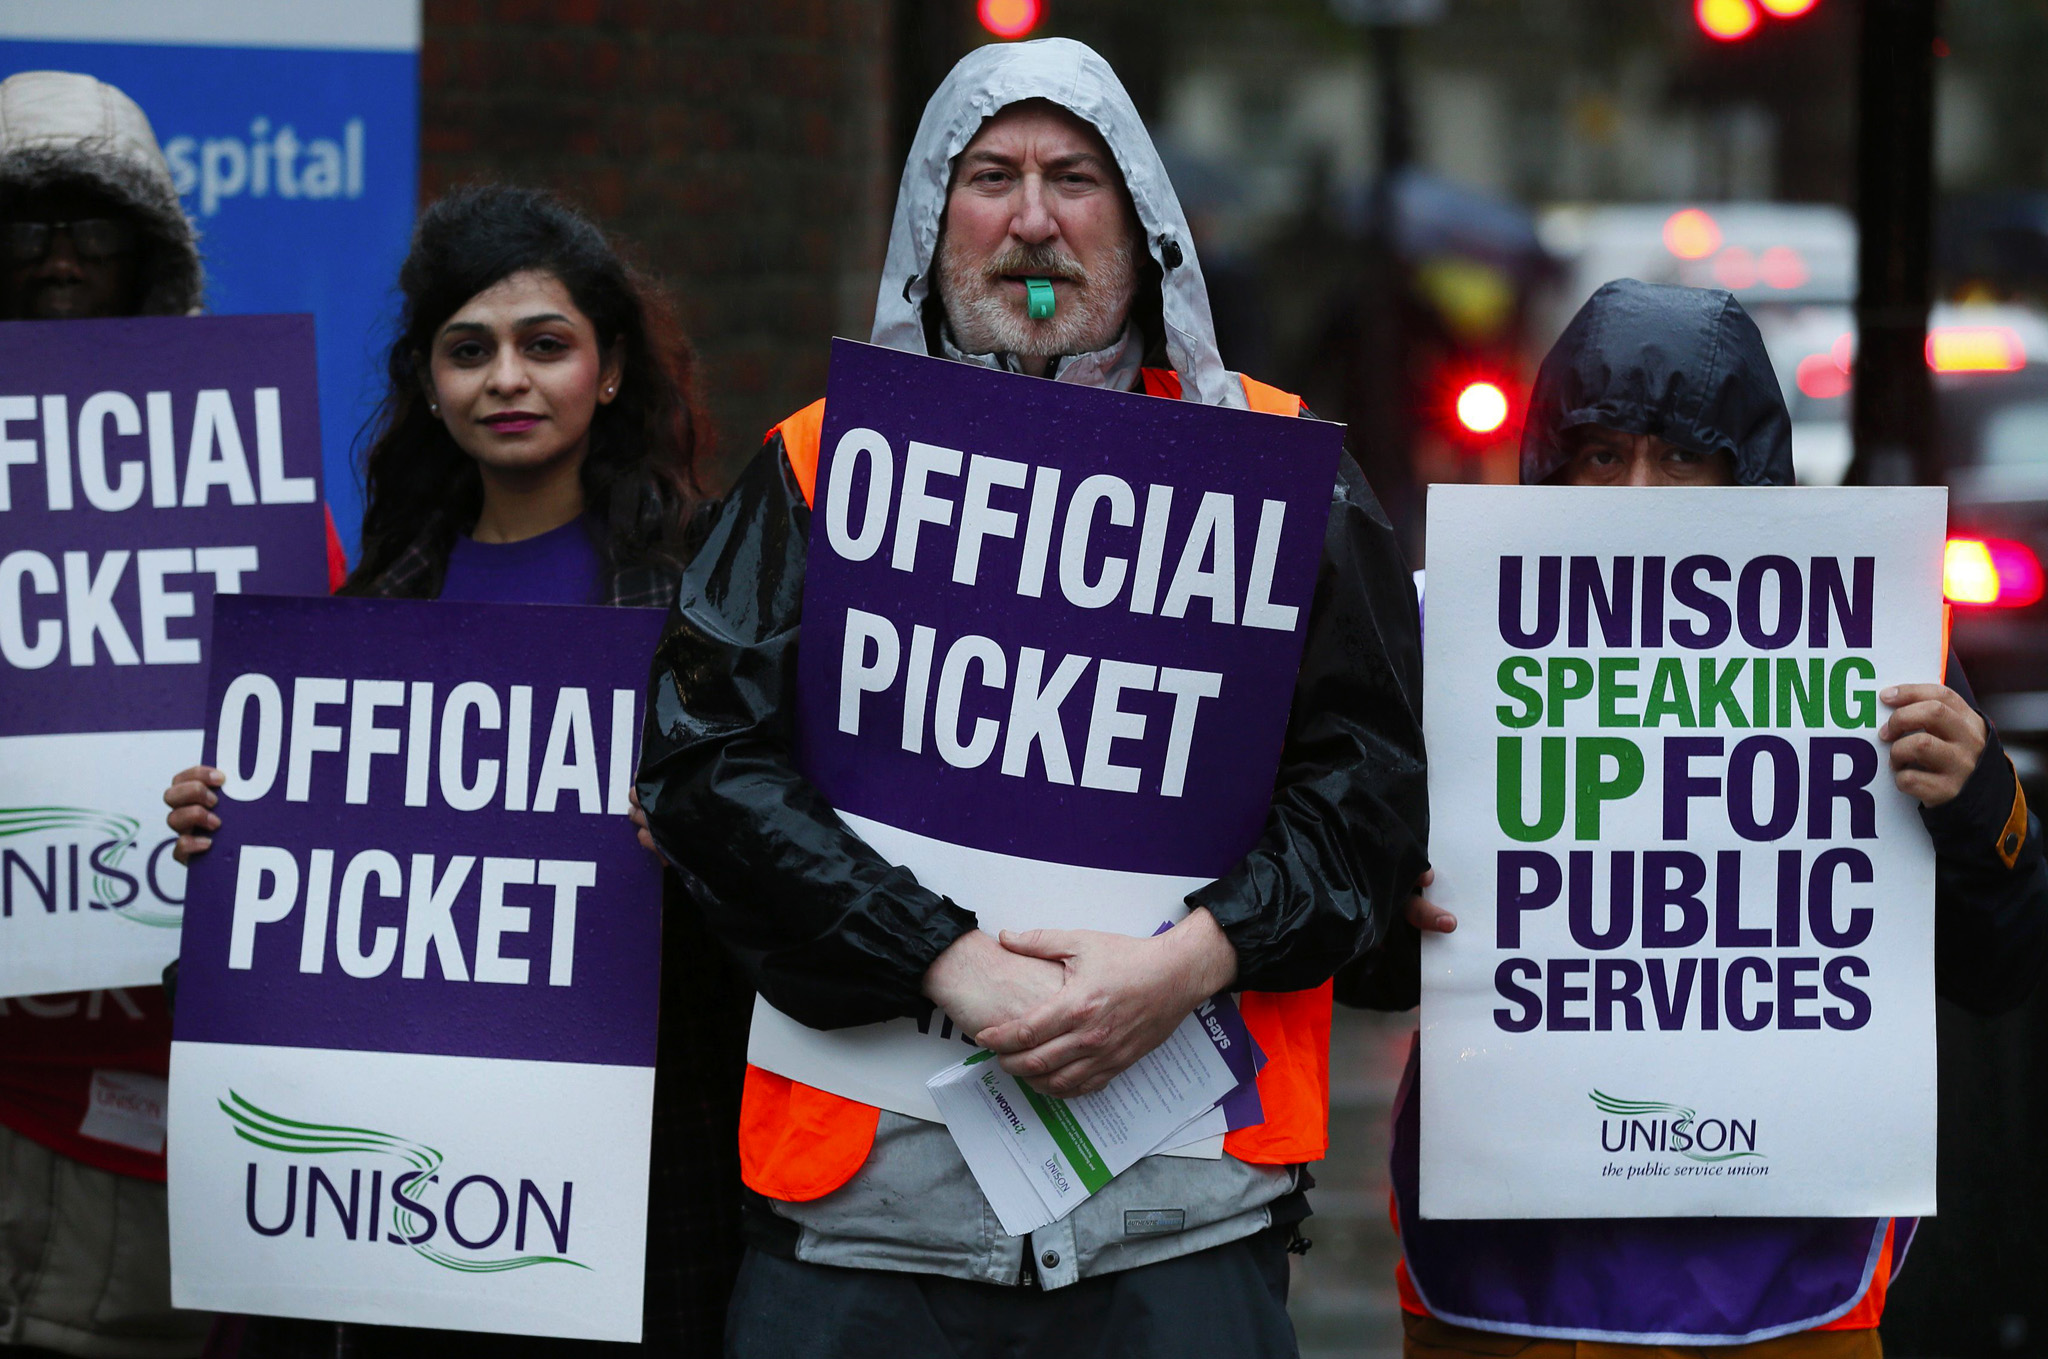 NHS workers hold placards during a strike, outside St Pancras Hospital in London. Thousands of health workers in Britain went on strike on Monday to protest against a pay freeze, the first walk out over pay in the country's state-run National Health Service (NHS) for over thirty years.